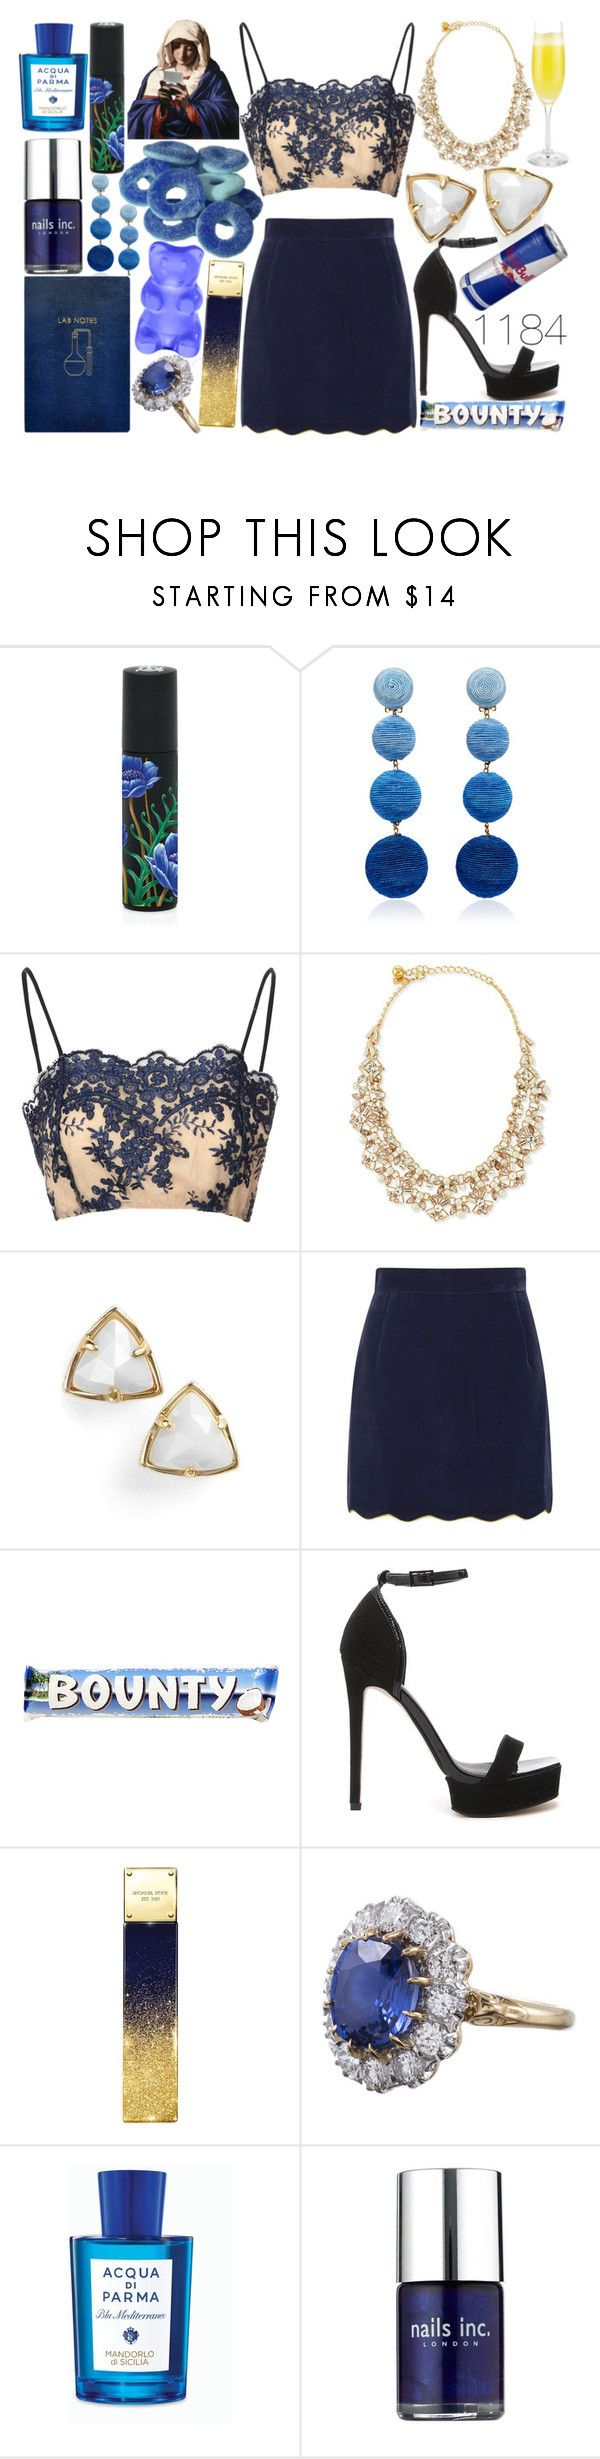 """""""Lab Notes"""" by graveclothes ❤ liked on Polyvore featuring Nest Fragrances, Rebecca de Ravenel, Glamorous, Kate Spade, Kendra Scott, House of Holland, ASOS, Michael Kors, CO and Acqua di Parma"""